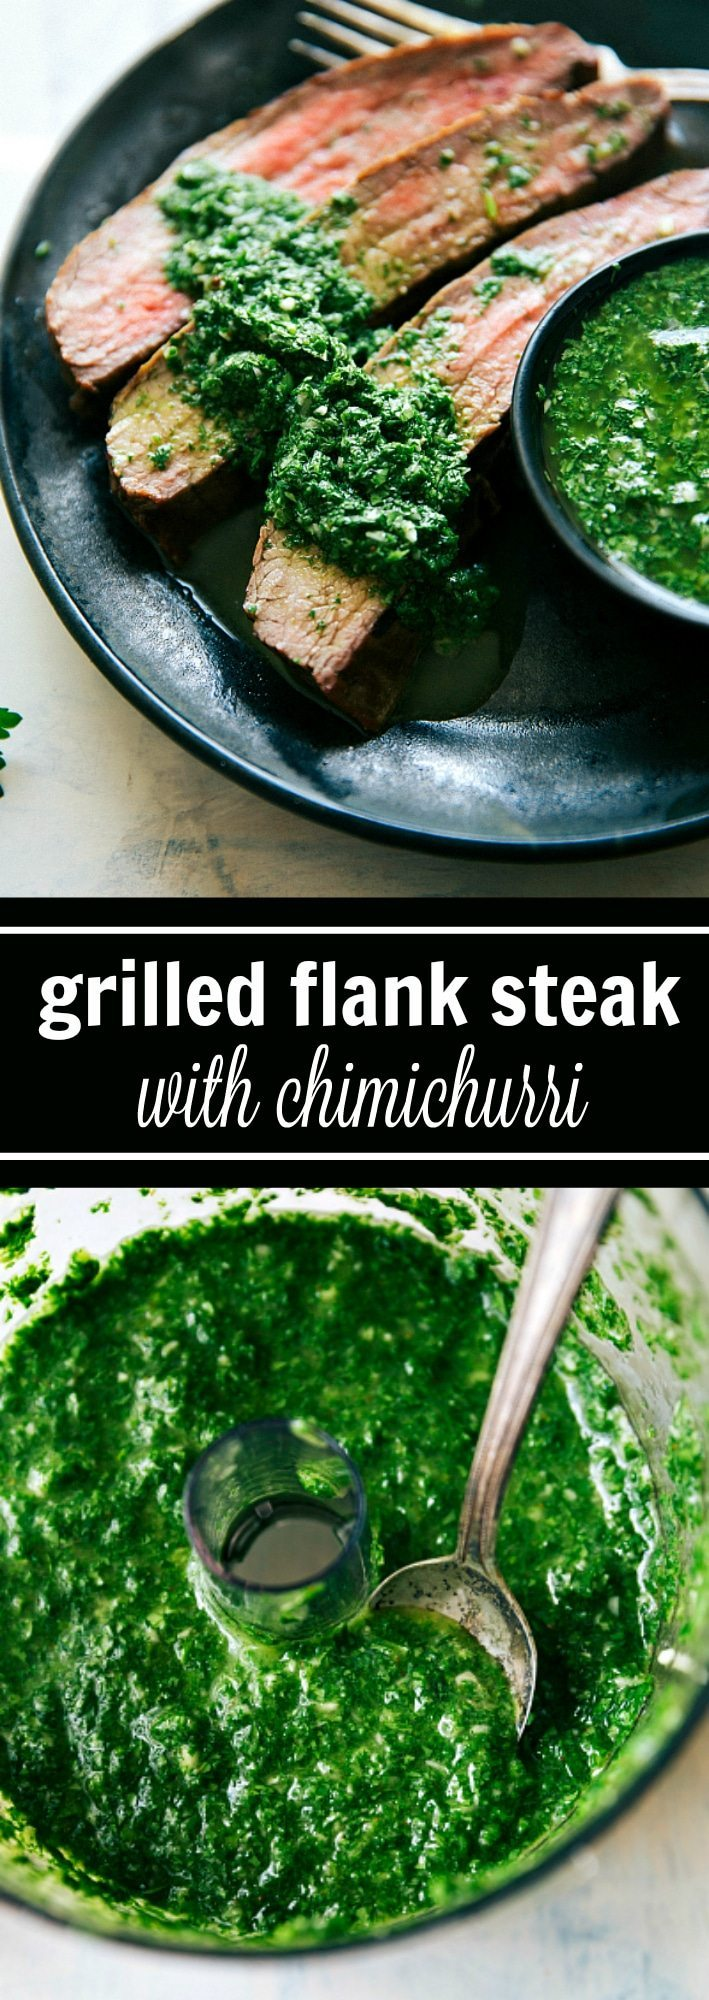 Easy grilled flank steak with a delicious marinade and an easy cilantro-parsley chimichurri. This grilled flank steak recipe includes a simple marinade, easy rub, and a delicious chimichurri sauce. Recipe from: chelseasmessyapron.com